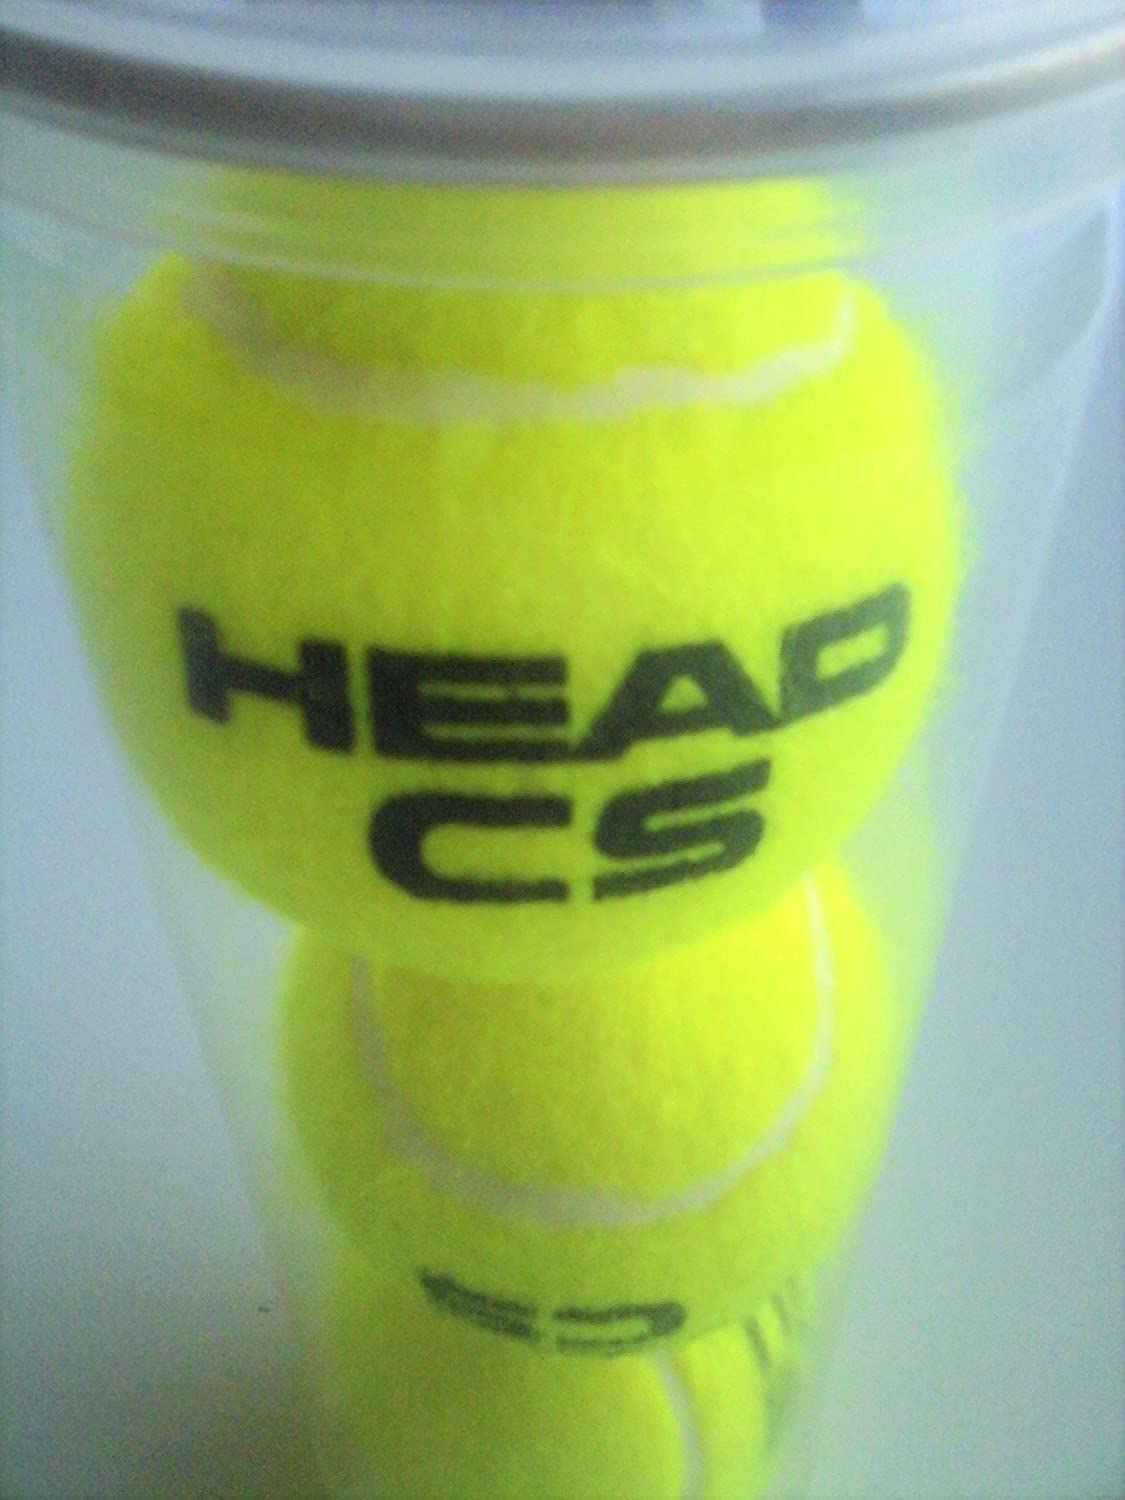 Head Pelotas Padel CS: Amazon.es: Deportes y aire libre